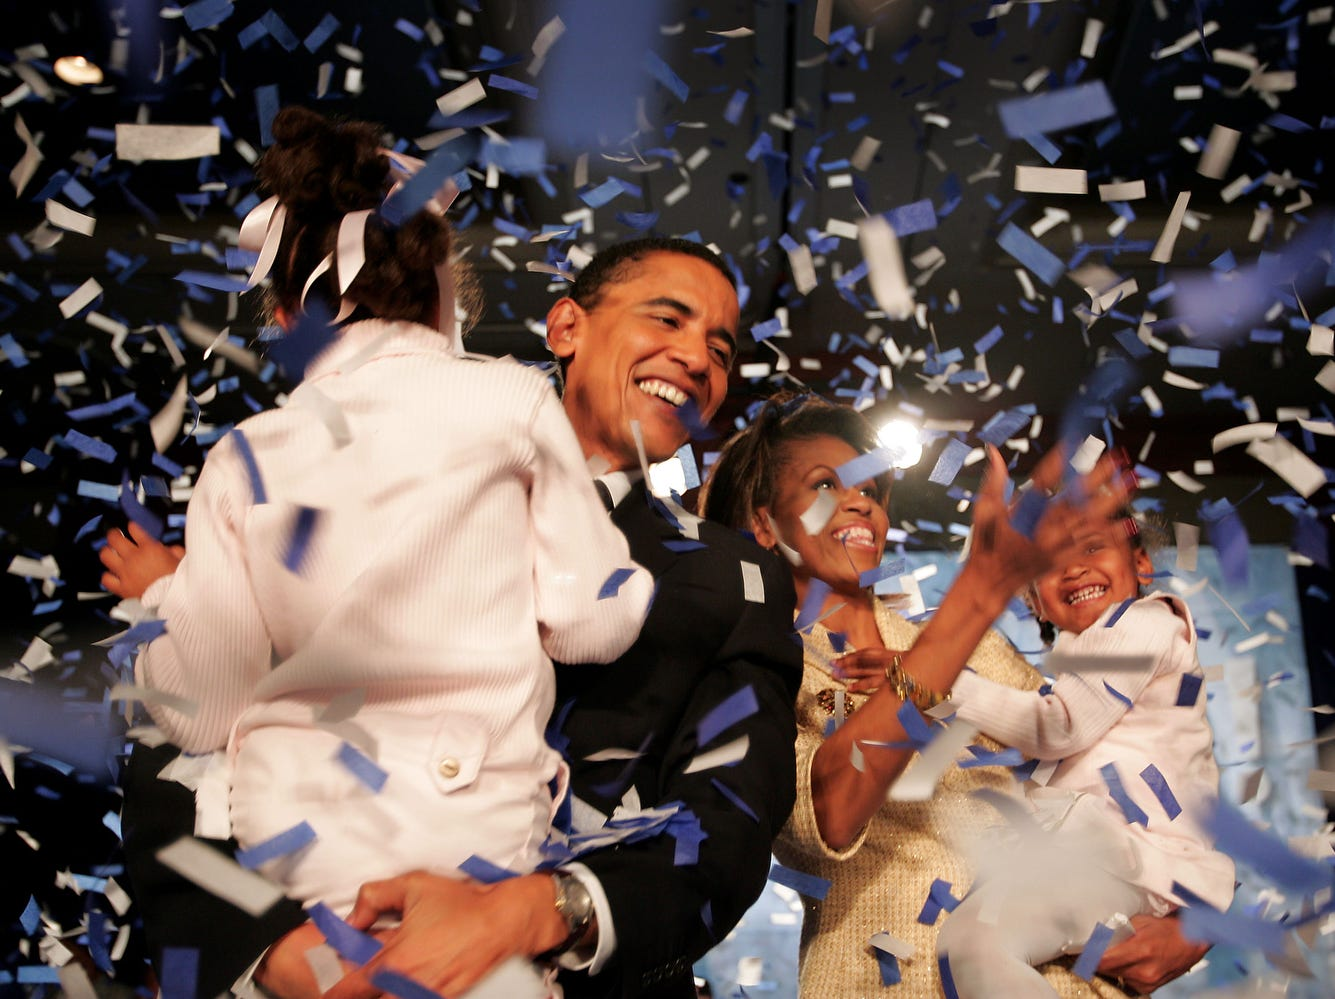 CHICAGO - NOVEMBER 2: Candidate for the U.S. Senate Barack Obama (D-IL) and his daughter Malia (L), wife Michelle and youngest daughter Sasha (R) celebrate his victory with supporters over Repulican rival Alan Keyes November 2, 2004 in Chicago, Illinois. Obama was expected to easily defeat Keyes in this first ever senate race featuring two major-party African-American candidates. (Photo by Scott Olson/Getty Images)